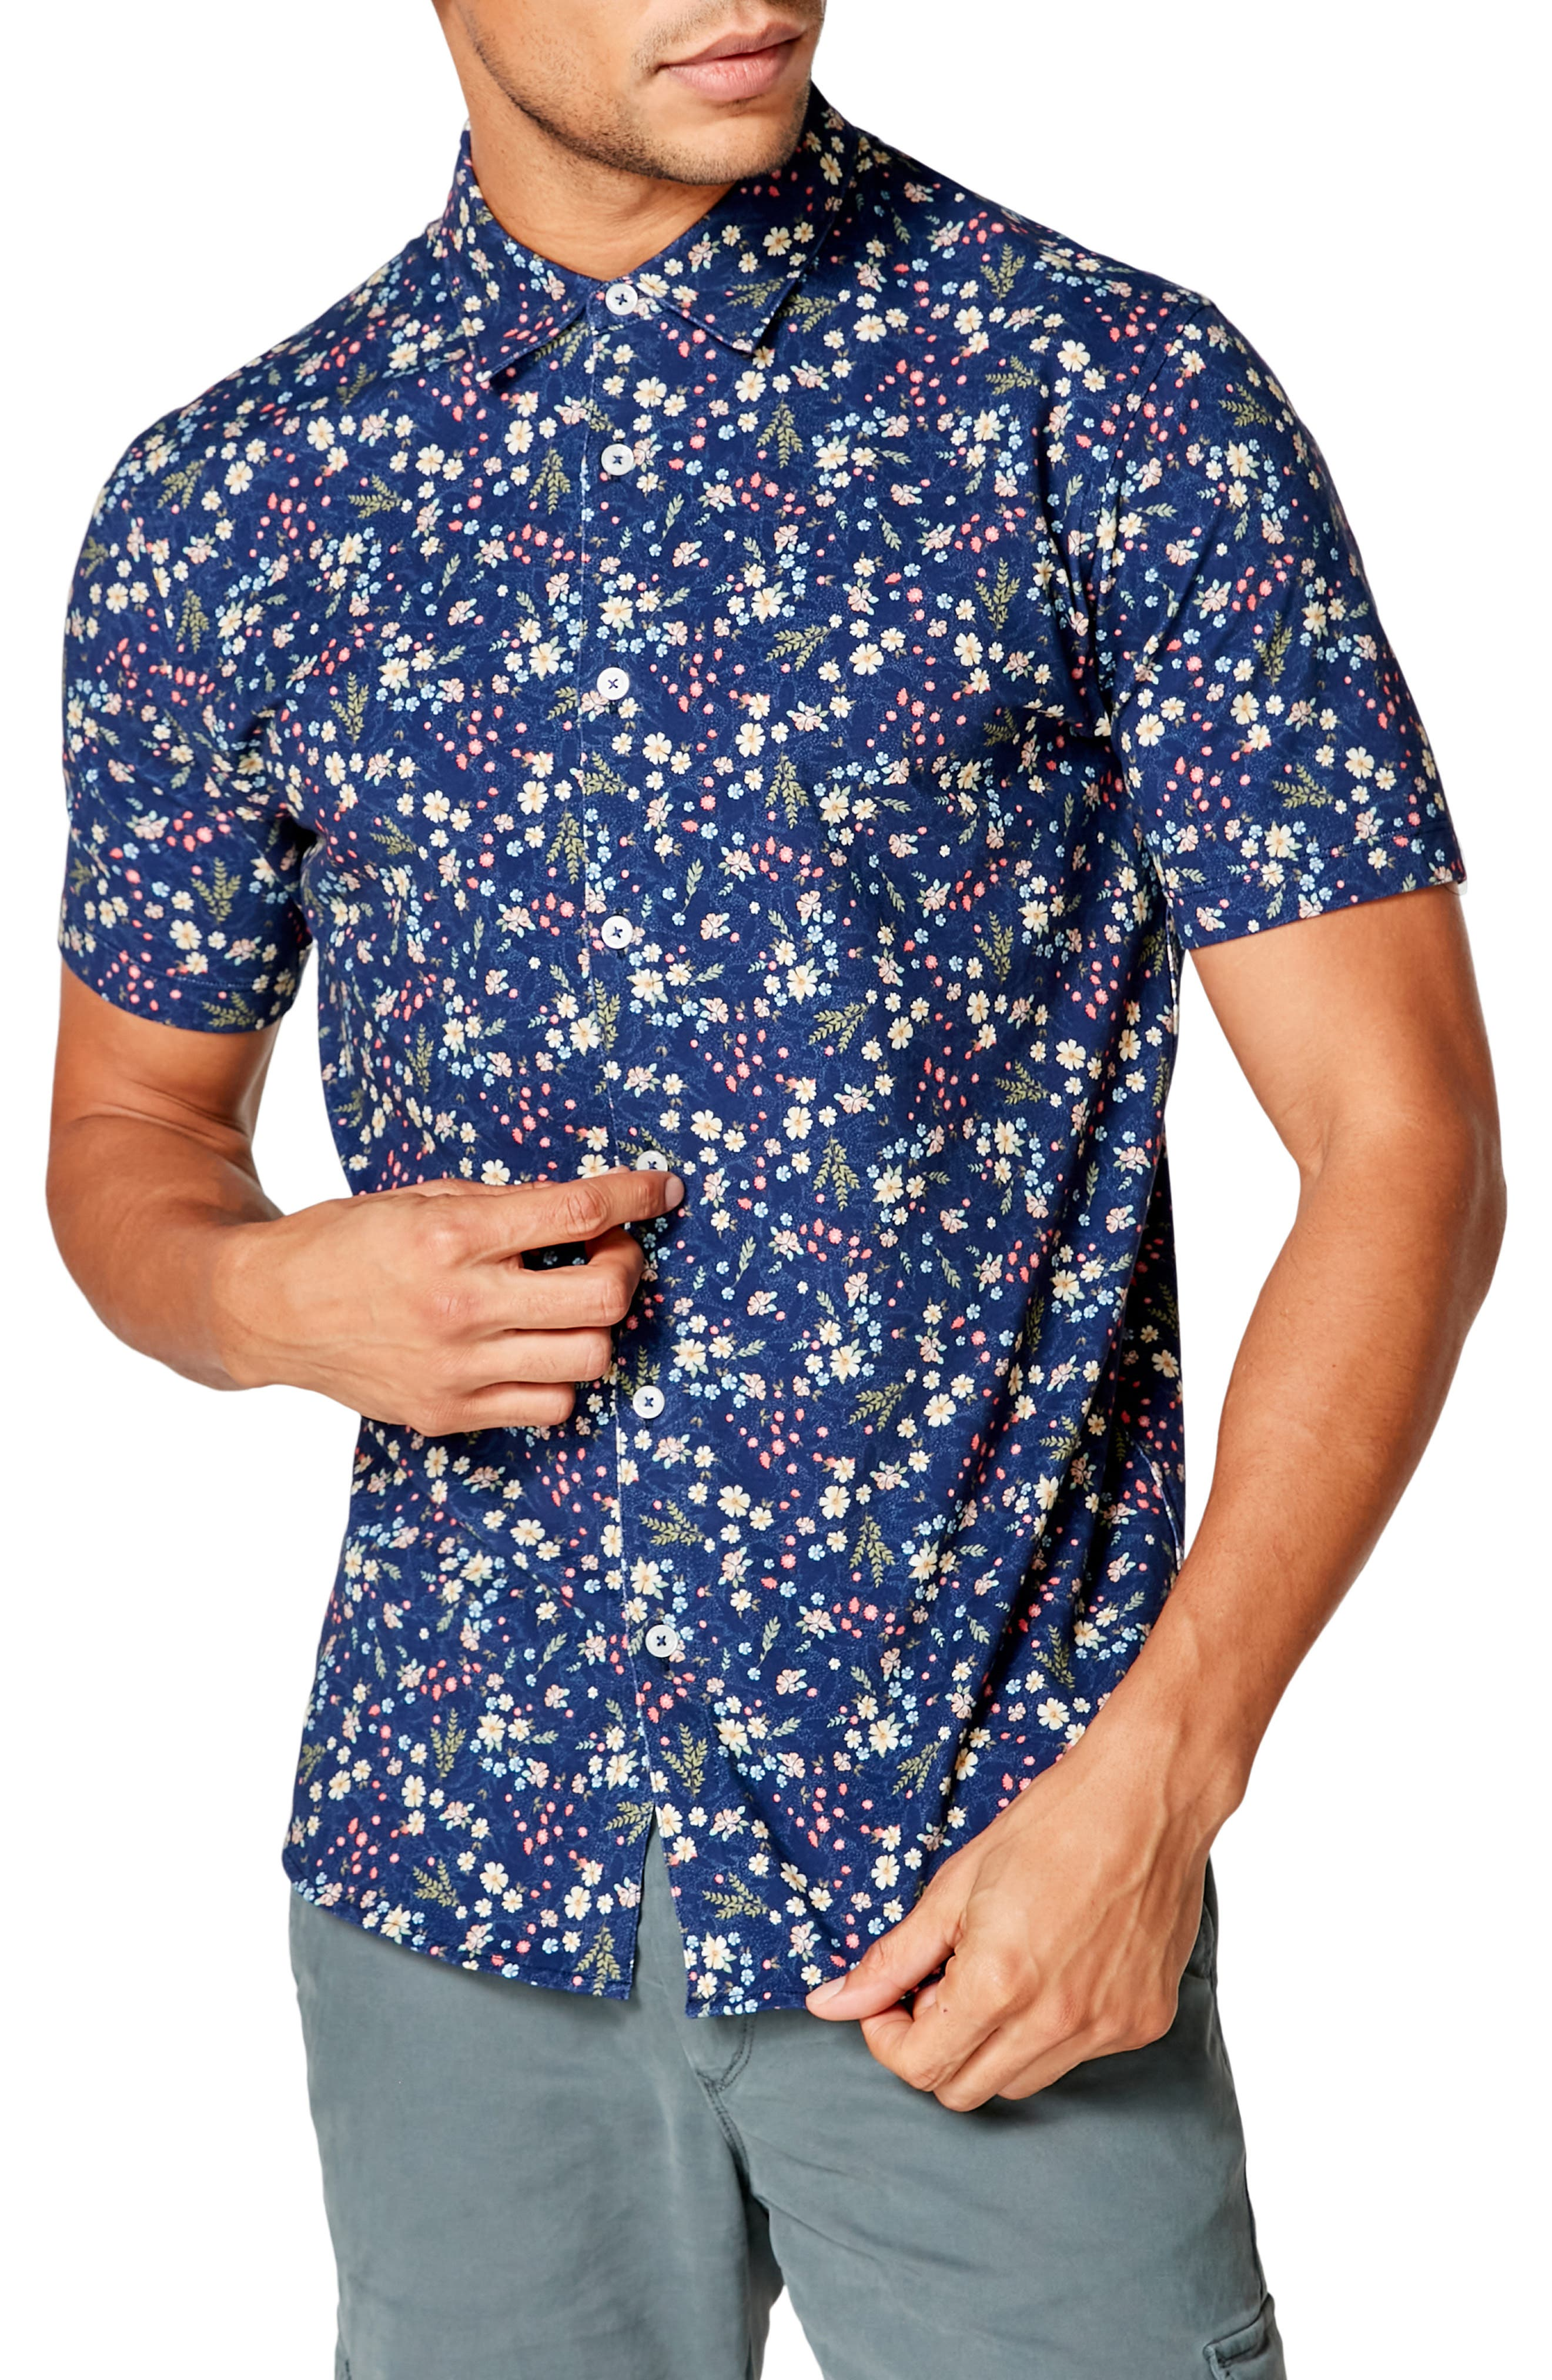 A slim-fitting short-sleeve shirt sporting a lively print is cut in a length that easily goes tucked or untucked. Style Name: Good Man Brand Flex Pro Slim Fit Print Short Sleeve Button-Up Shirt. Style Number: 5979742 2. Available in stores.